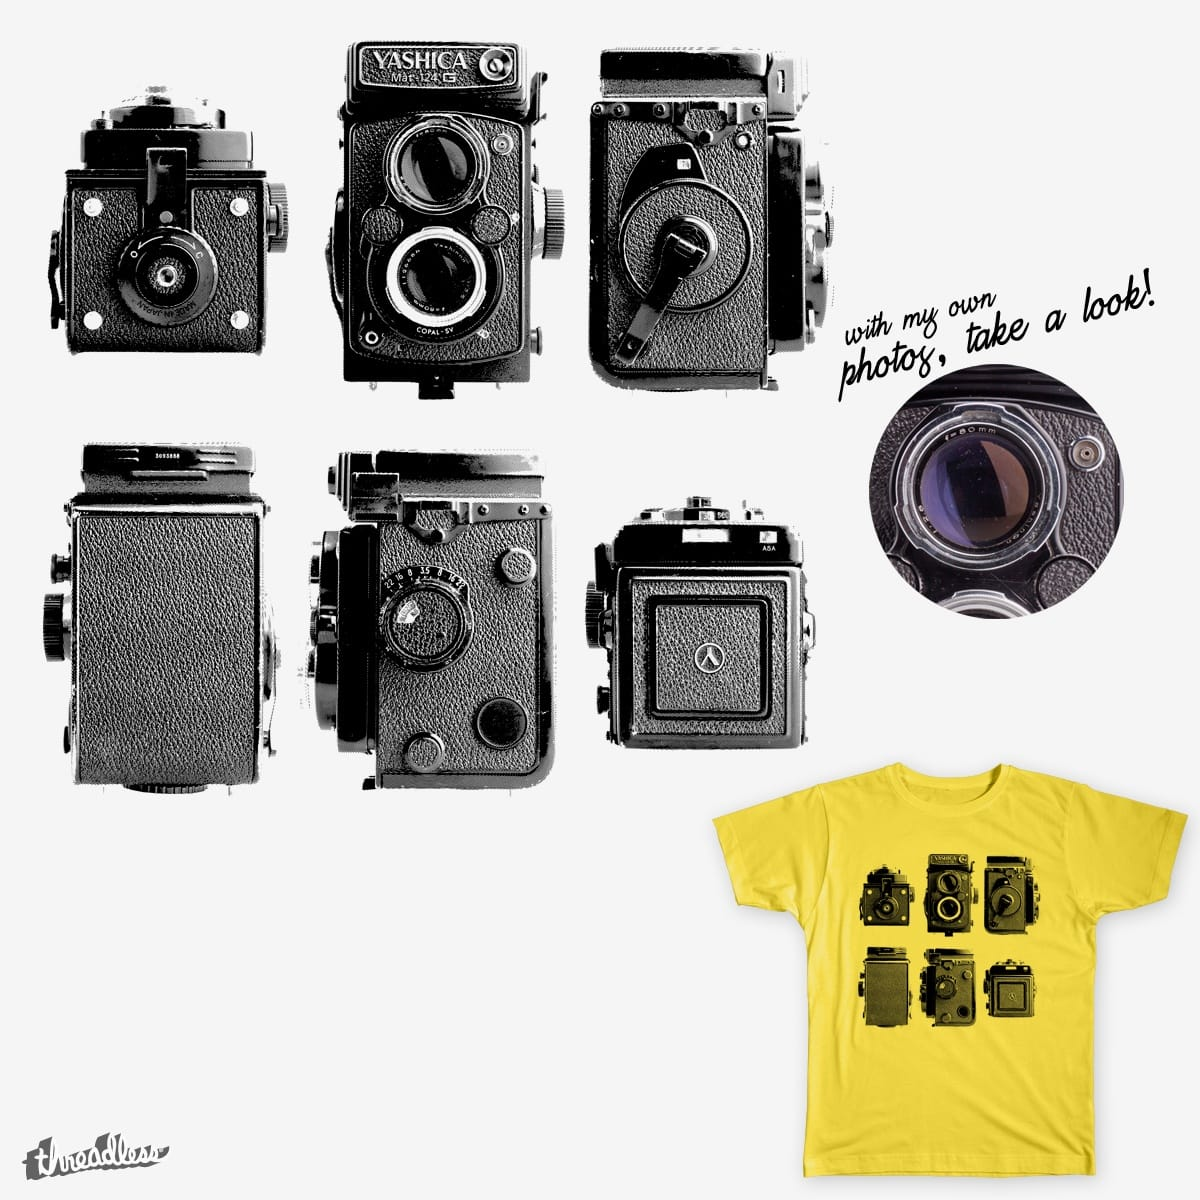 Old Flanked Camera by alvarobueno on Threadless